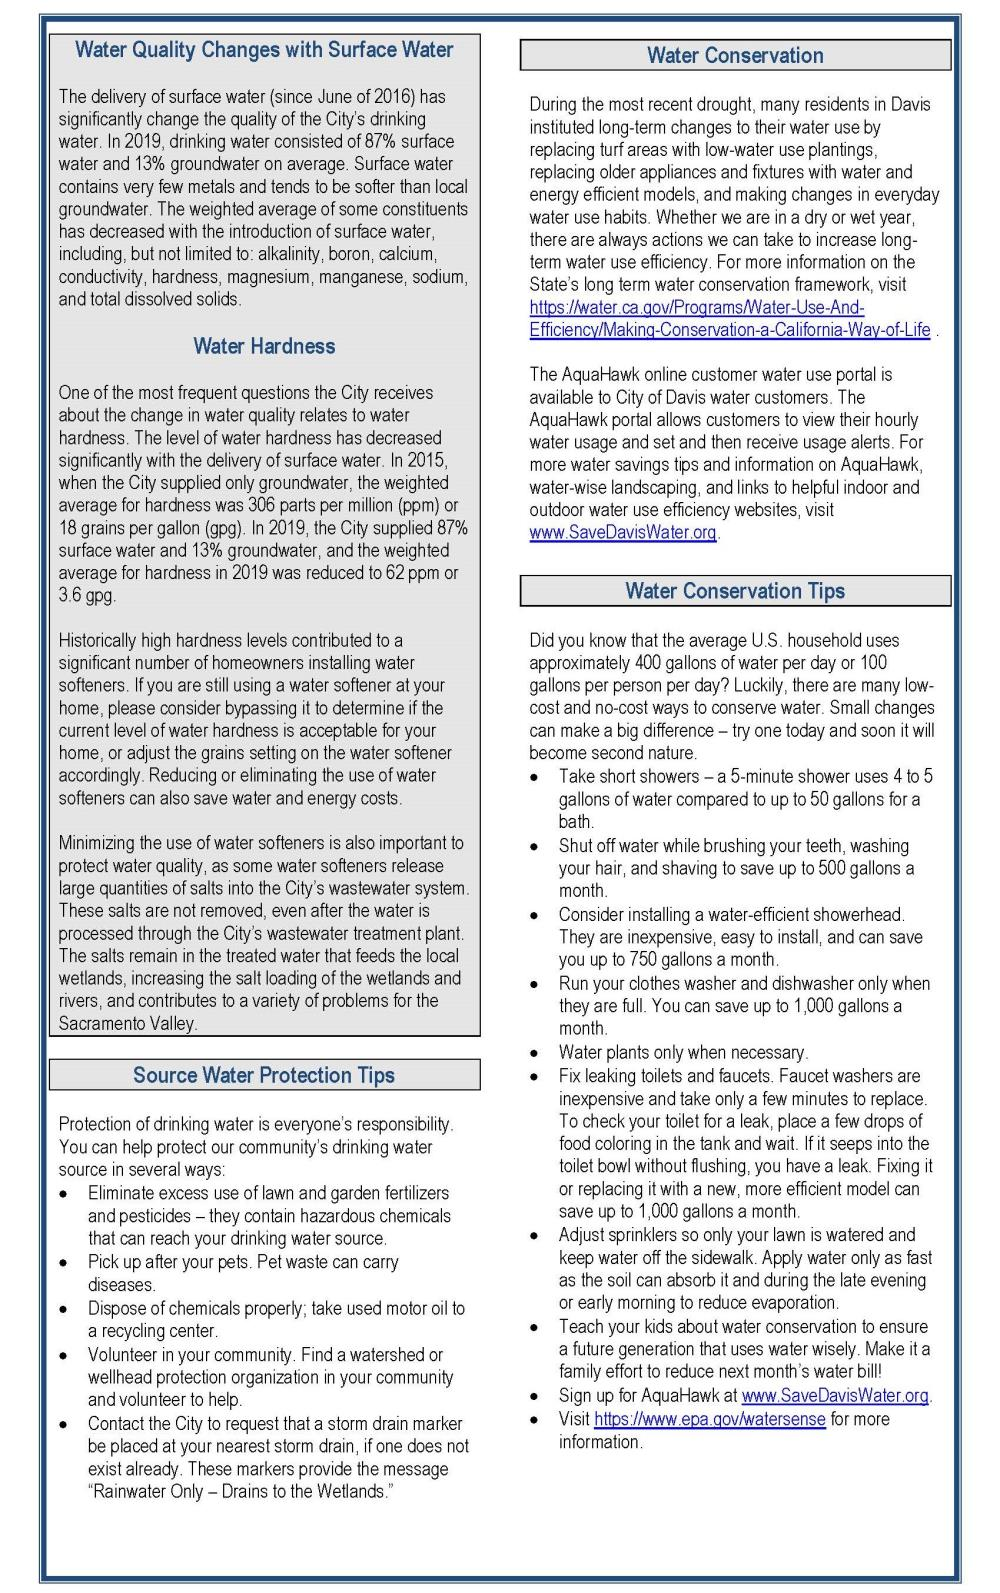 2019 Water Quality Report_Page_3